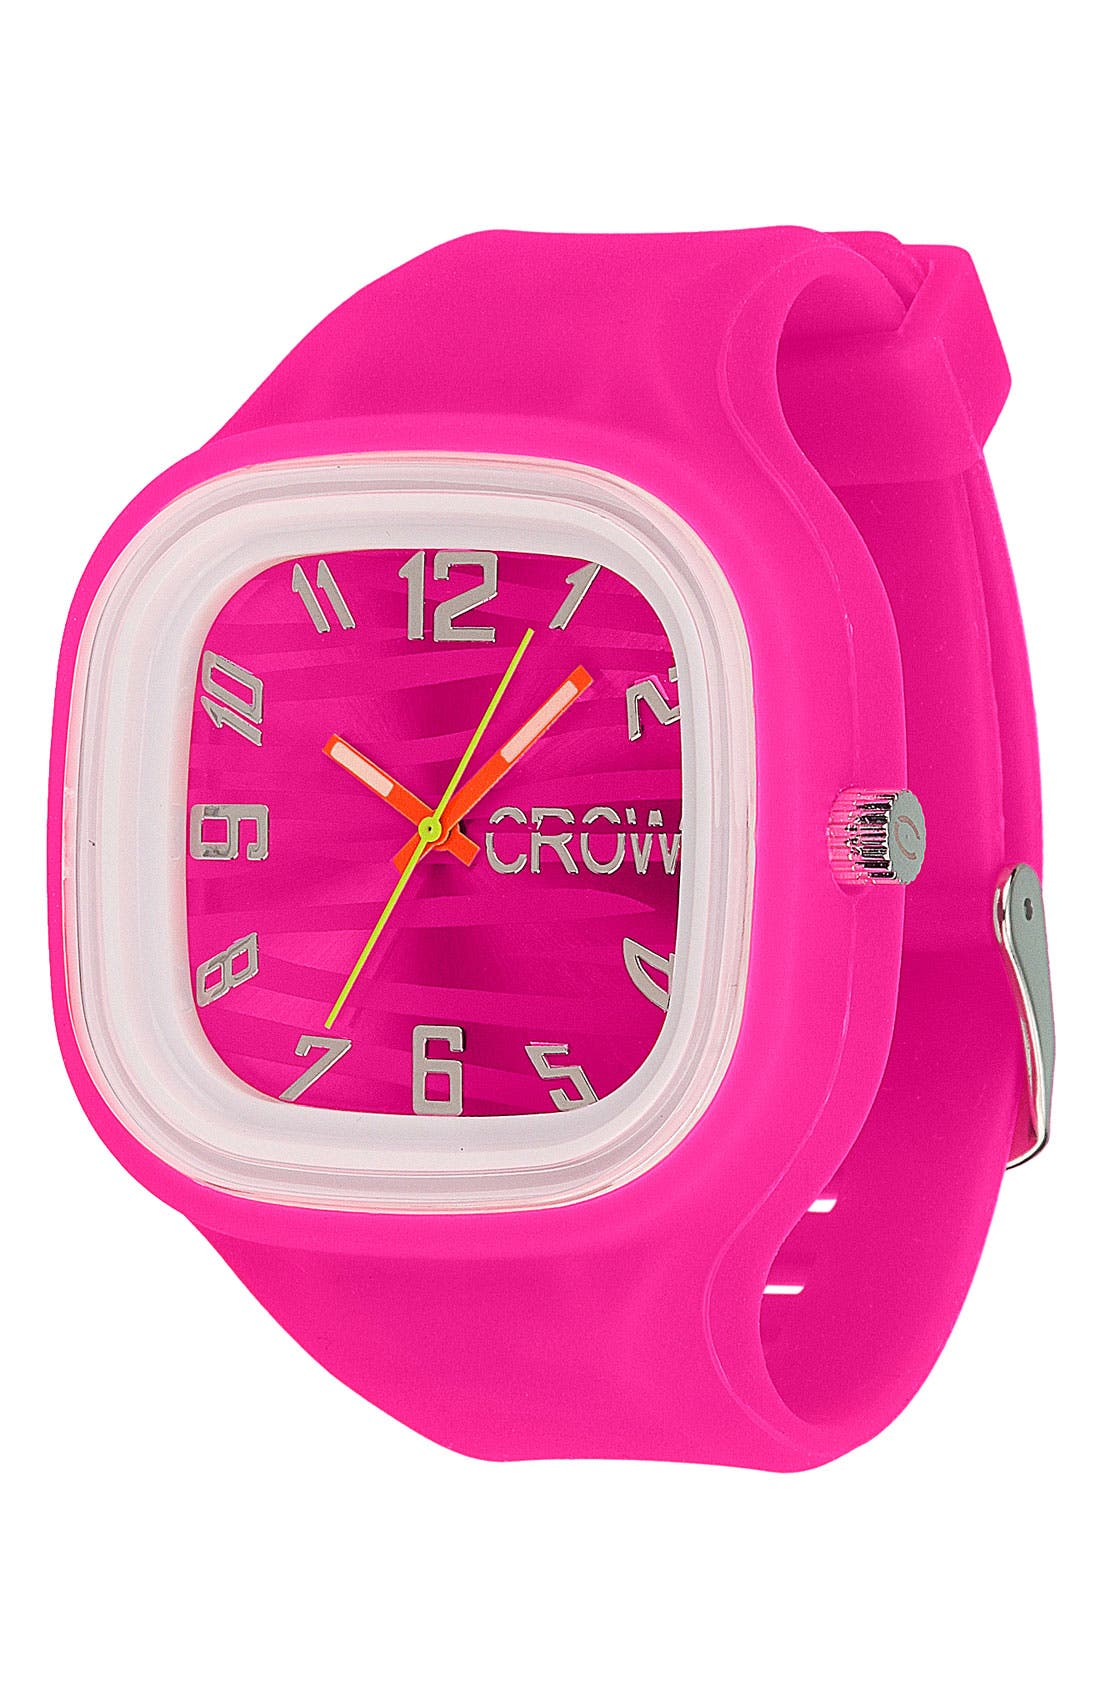 Alternate Image 1 Selected - Crow 'Zebra' Gel Watch